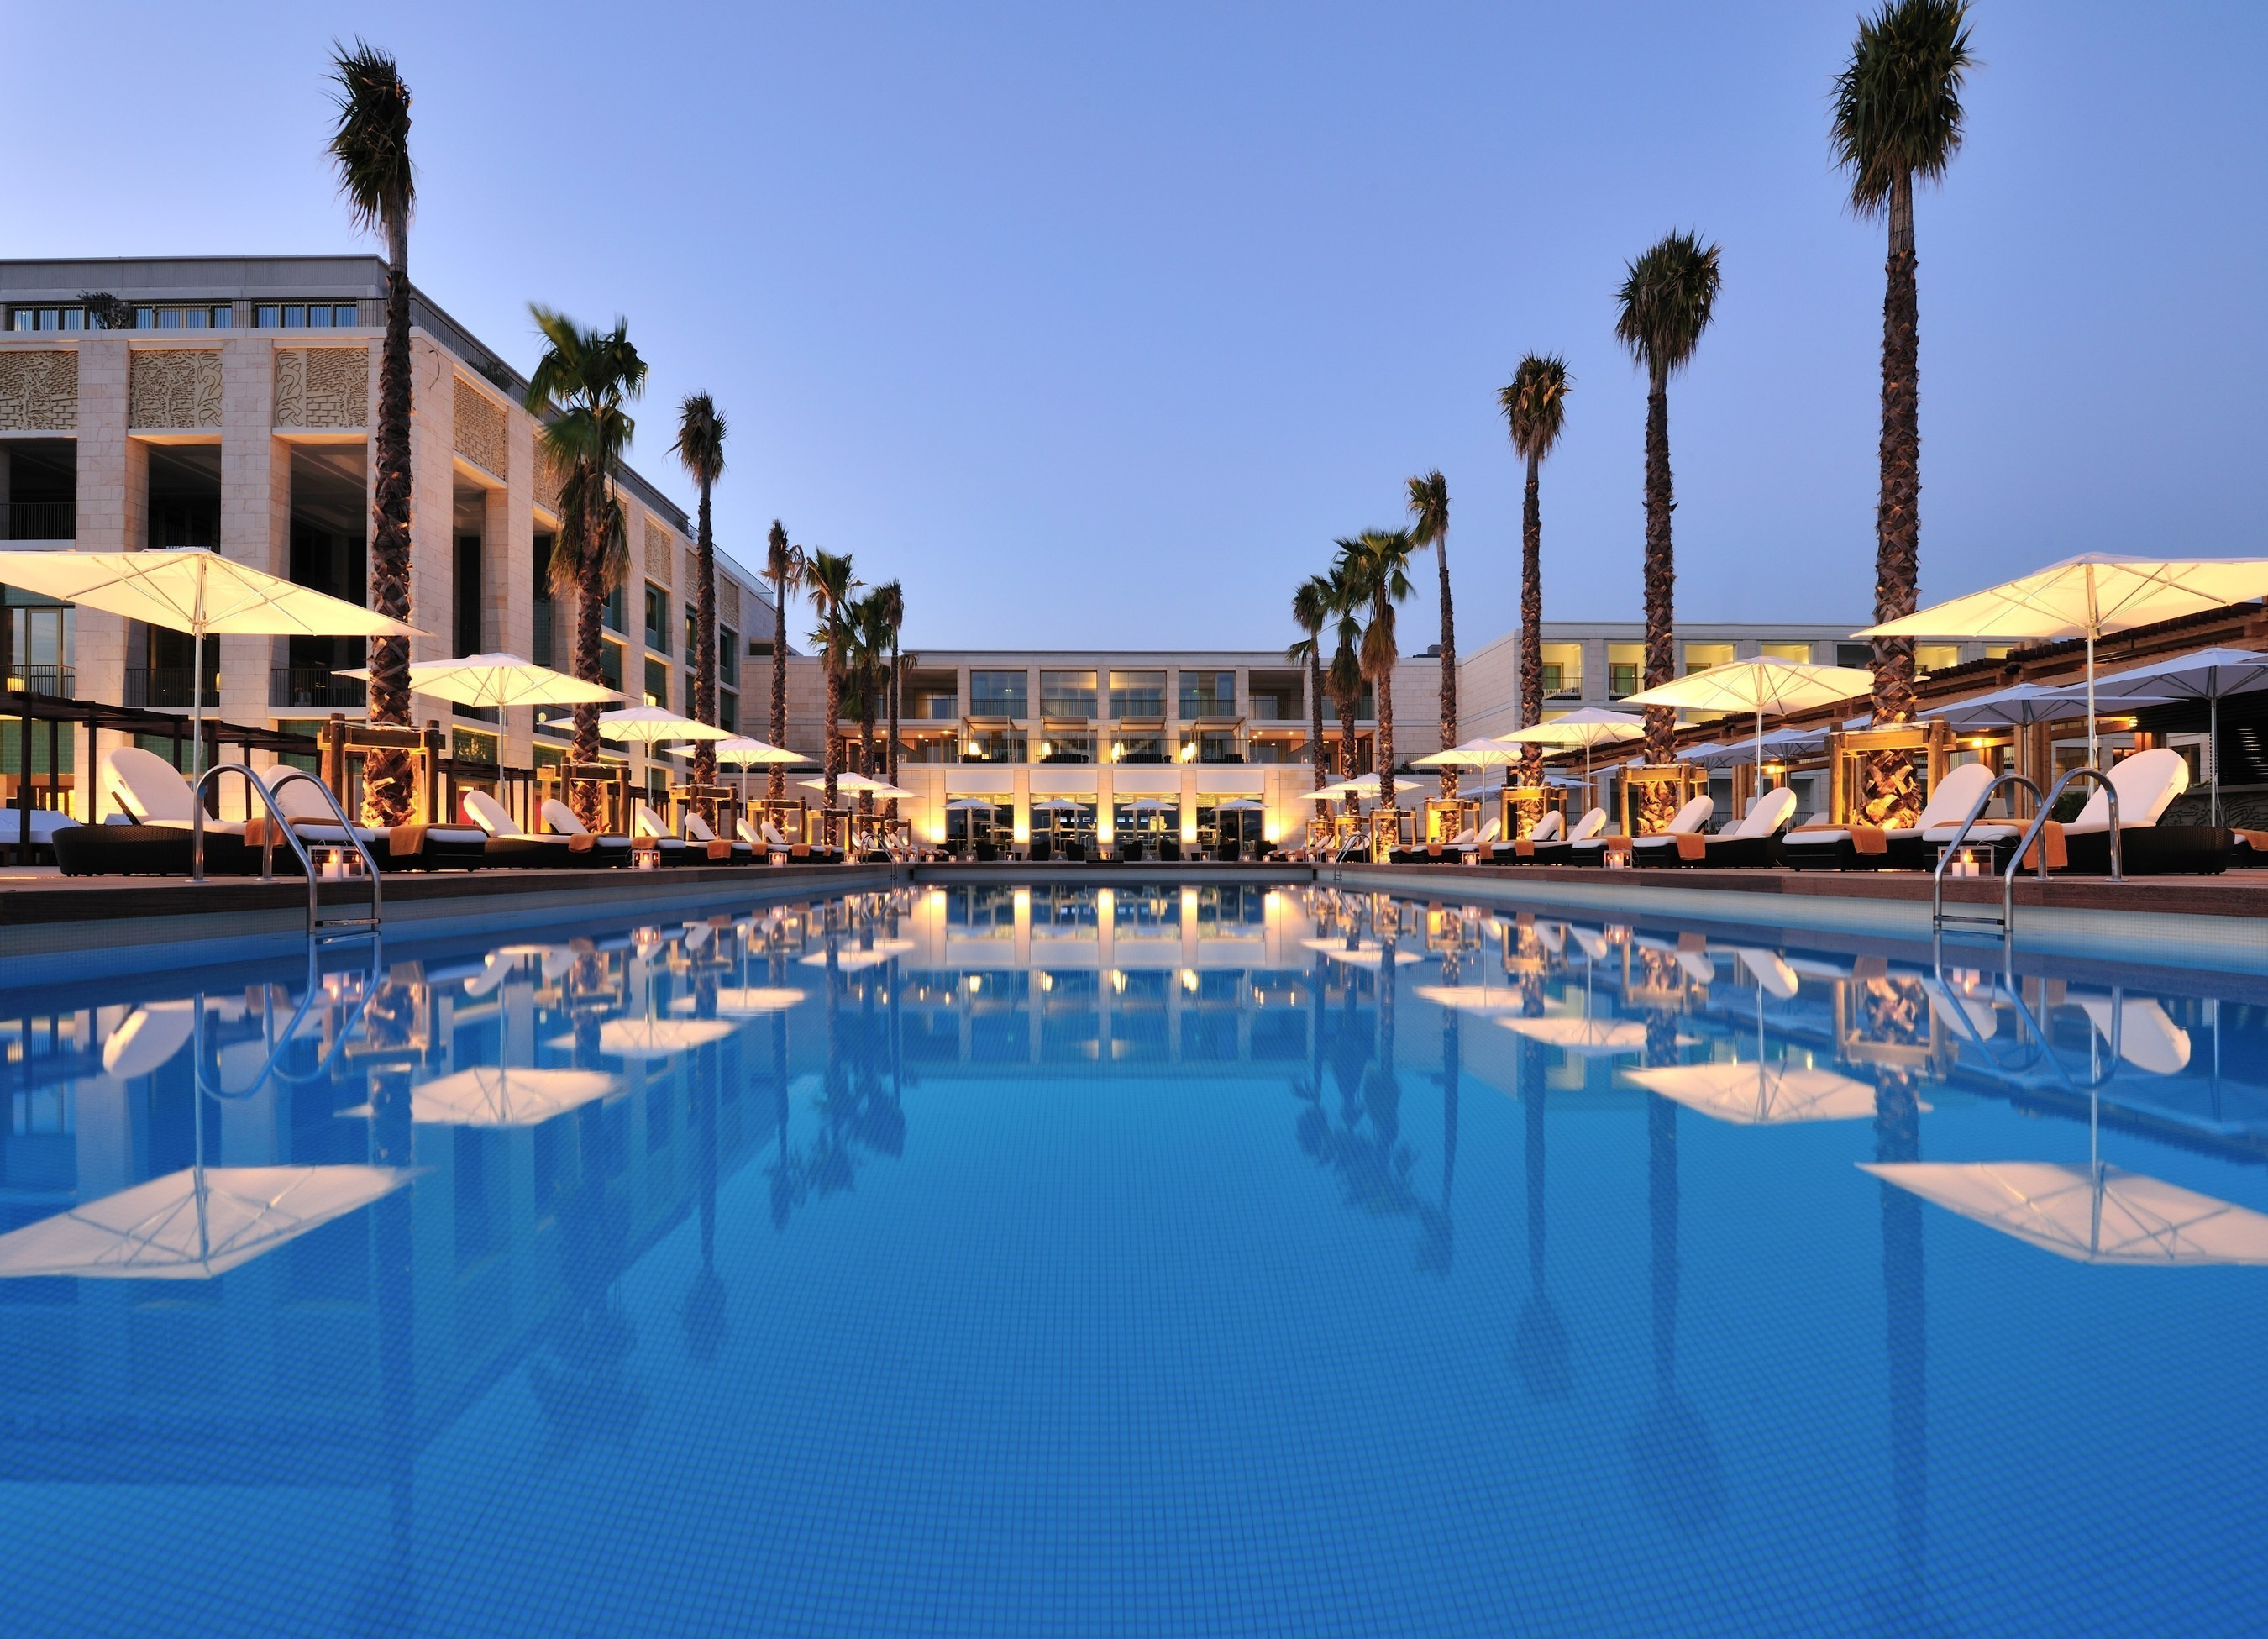 Tivoli Hotel In Algarve Minor Hotel Group Completes Largest Ever Hospitality Deal In